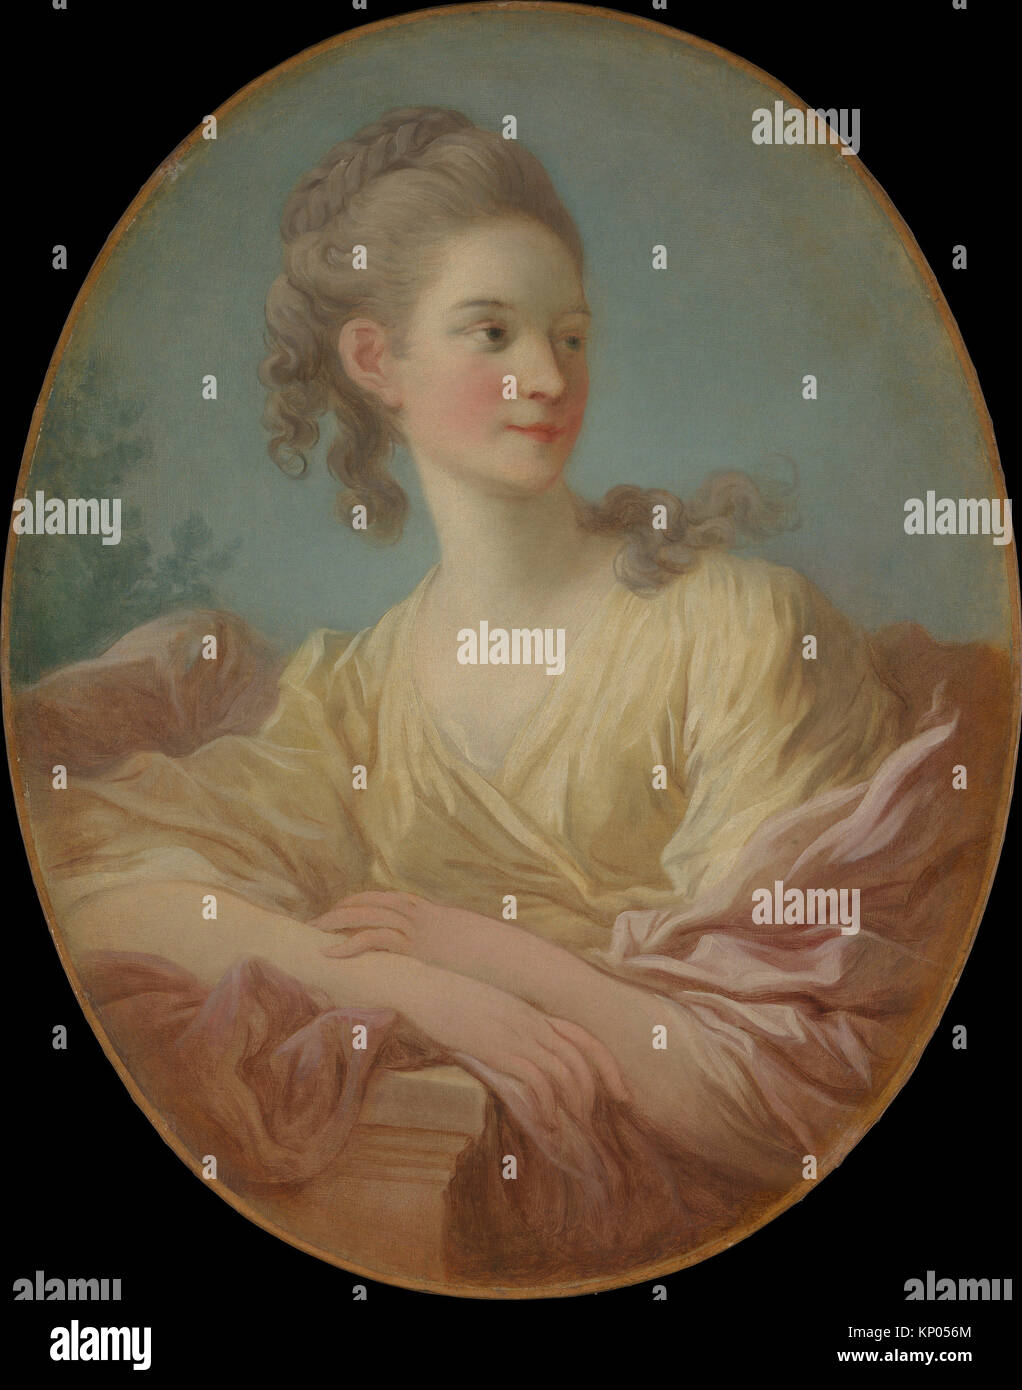 Portrait of a Young Woman. Artist: Jean Honoré Fragonard (French, Grasse 1732-1806 Paris); Date: 1770s; Medium: - Stock Image